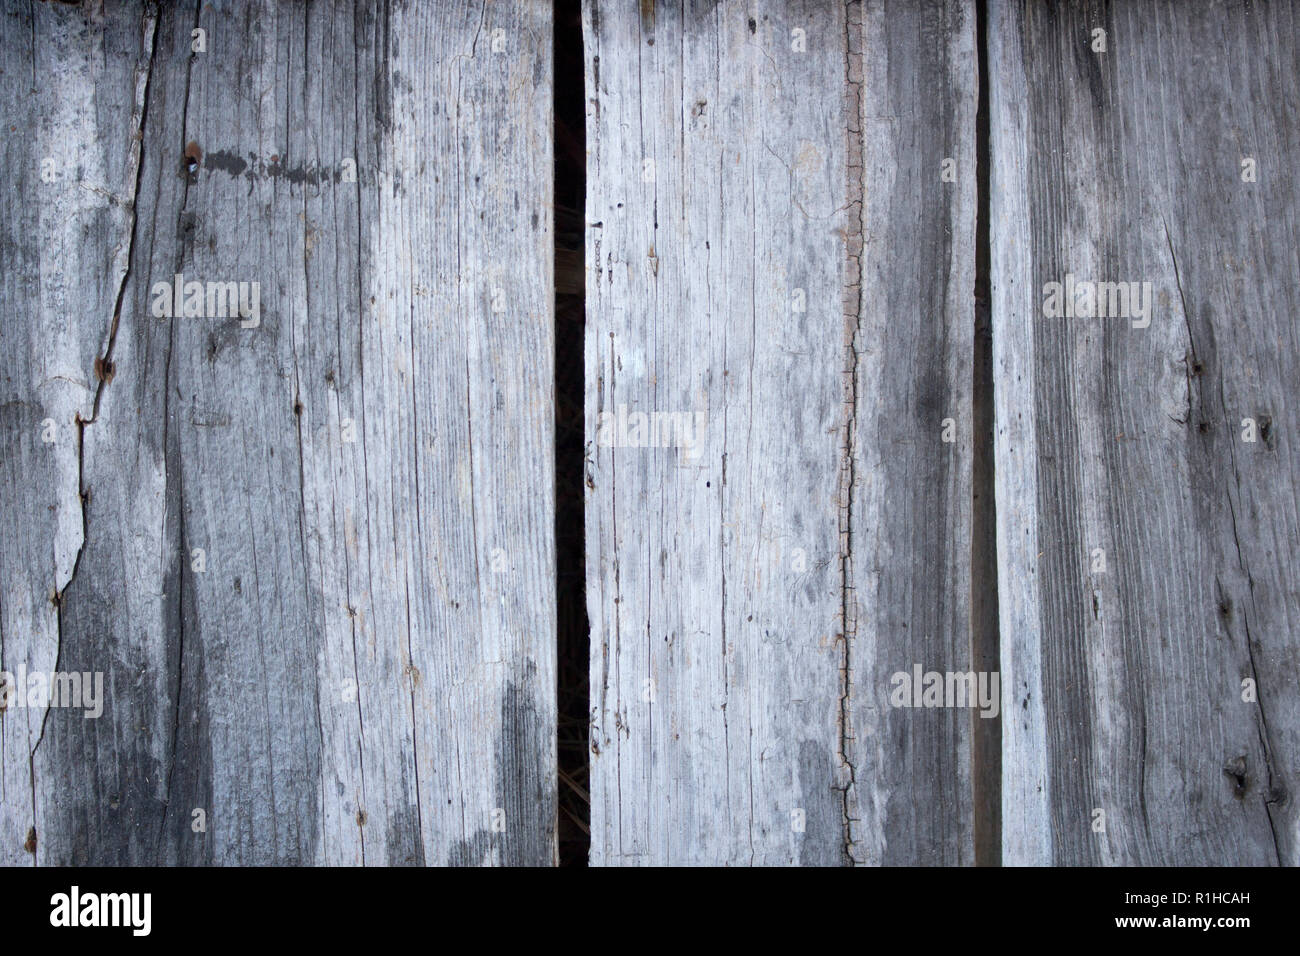 Dry, cracked and old wood planks. Gray wood texture background with an abandoned, grunge vibe. - Stock Image